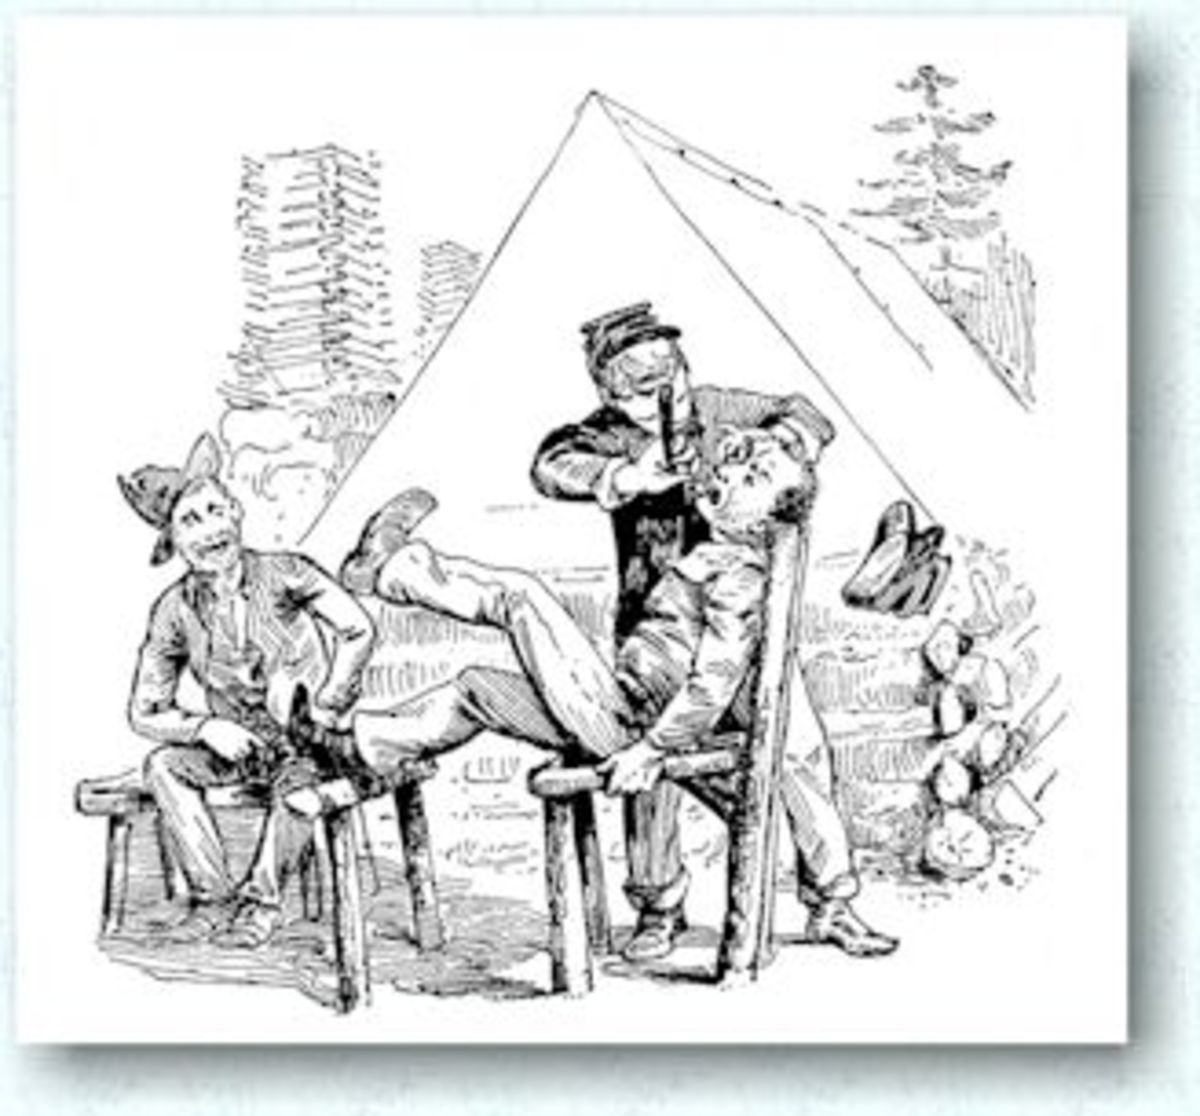 A sketch of a camp barber and his customer (victim?)